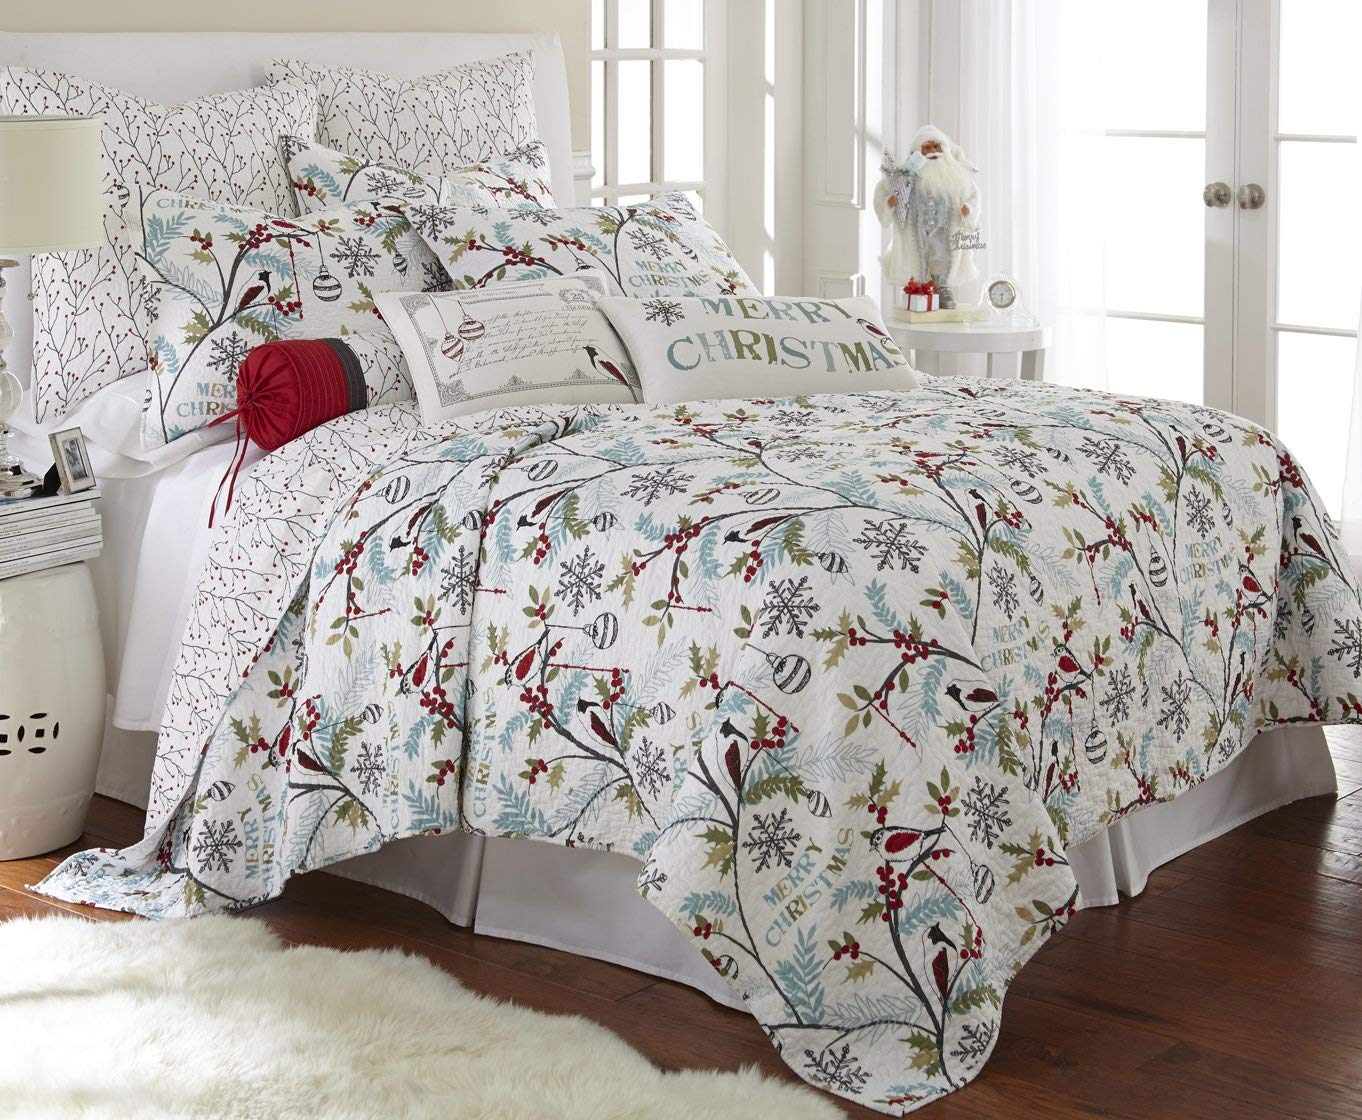 Levtex Christmas Quilt Set - Best Christmas Bedspreads And Quits